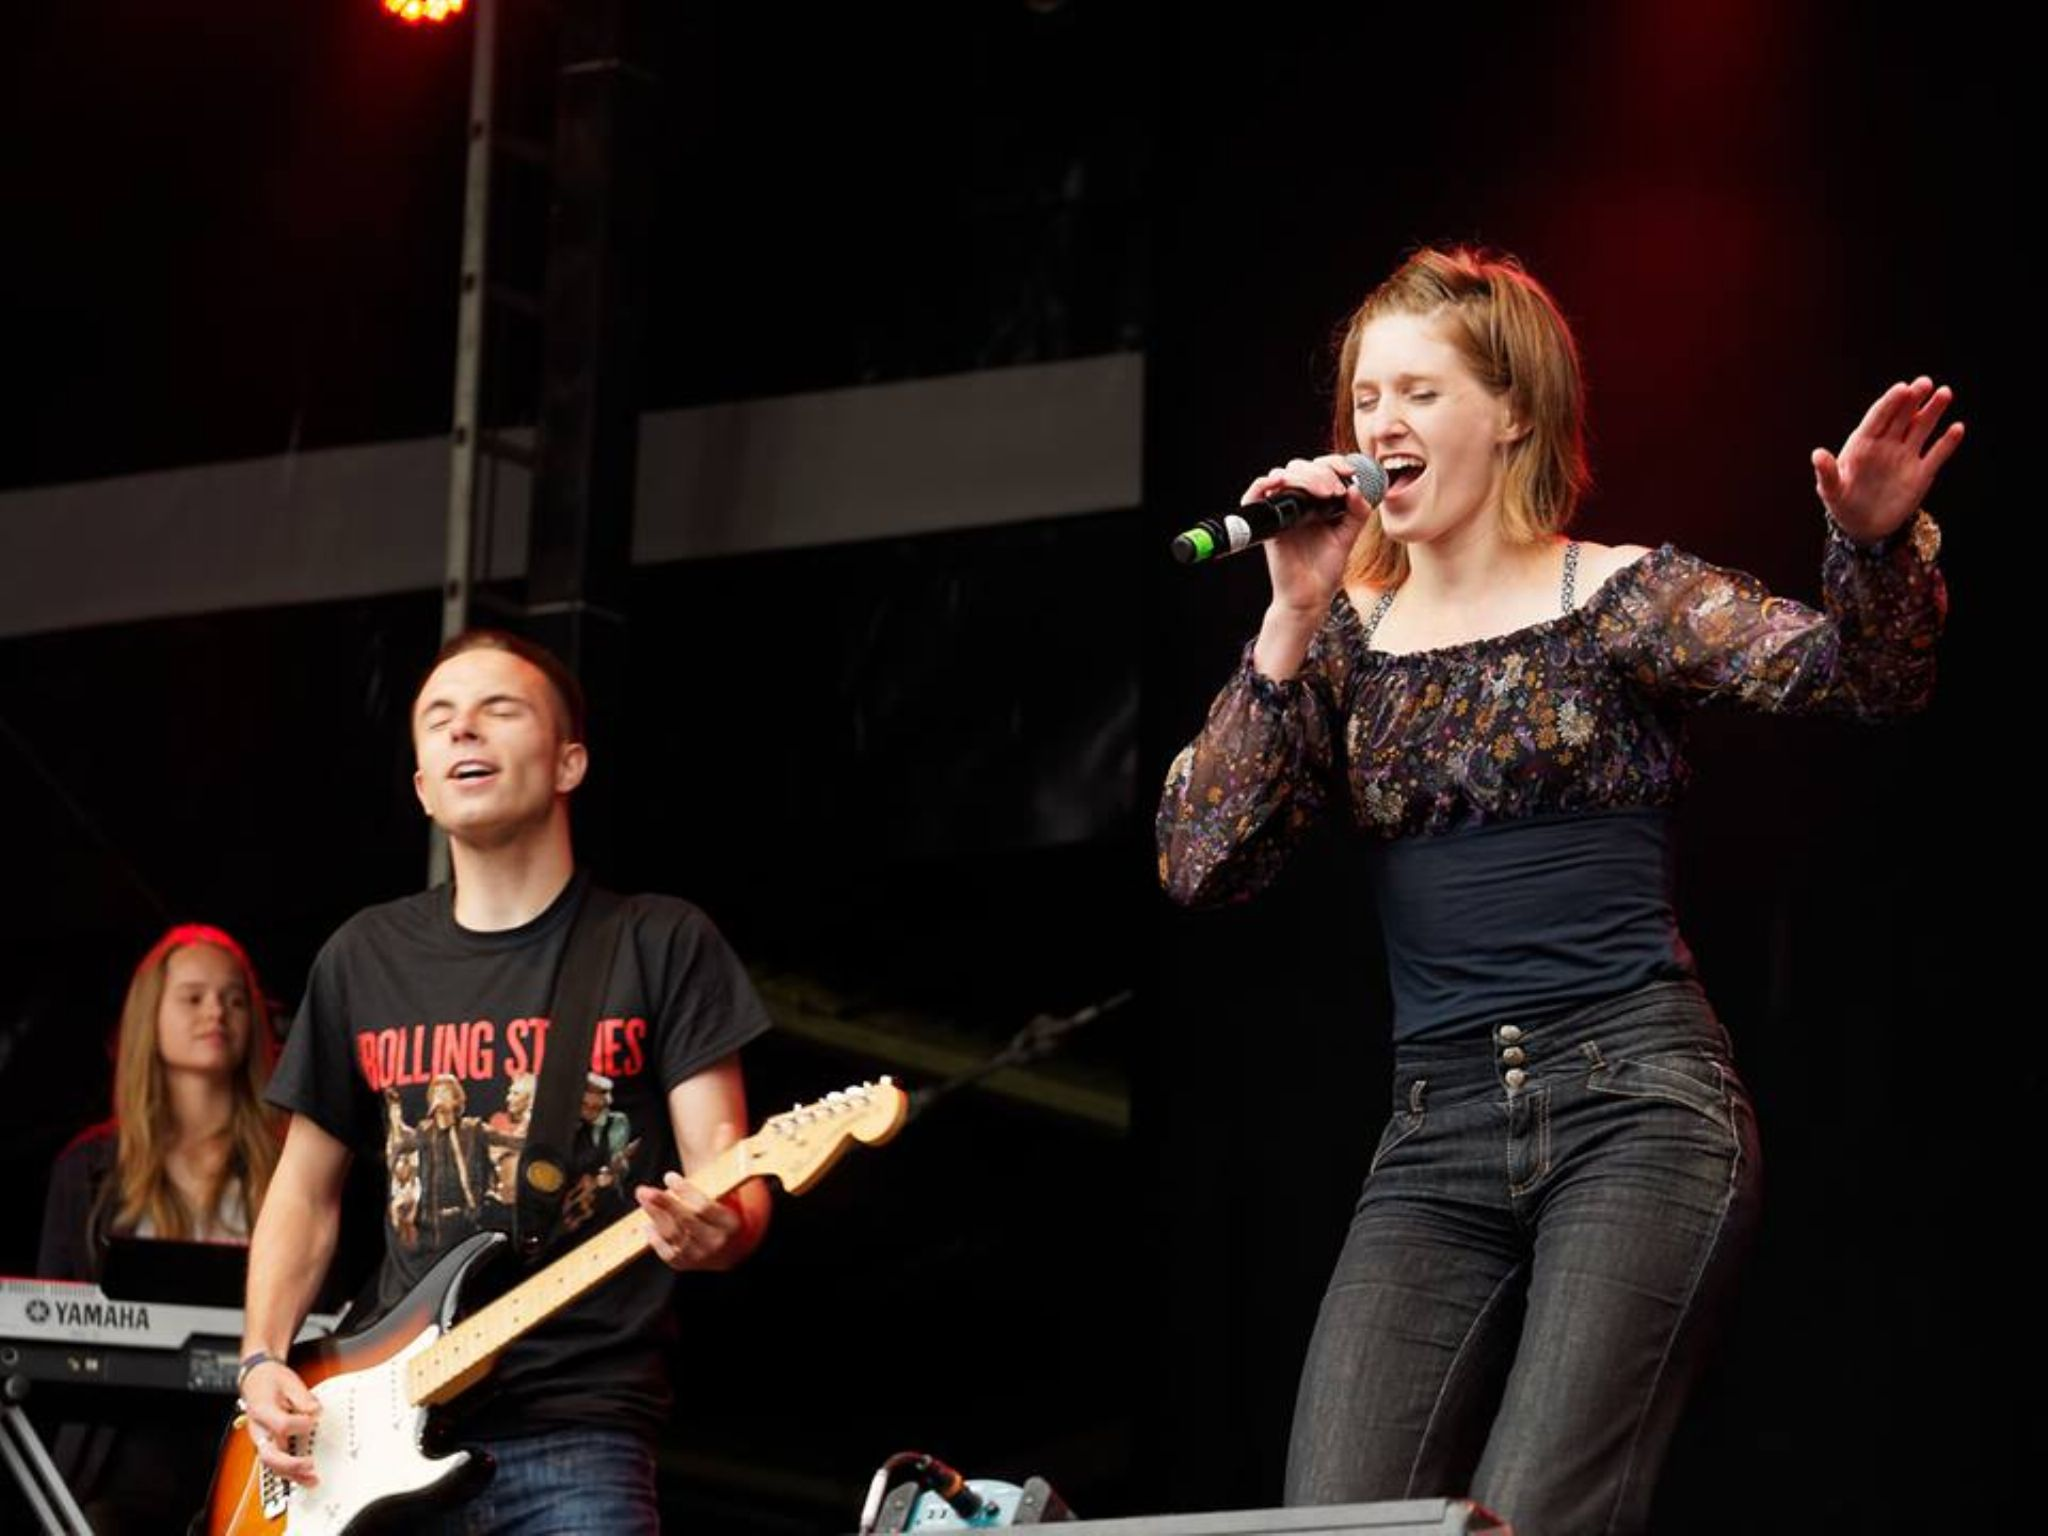 Genk On Stage 2014 by patrick optroodt